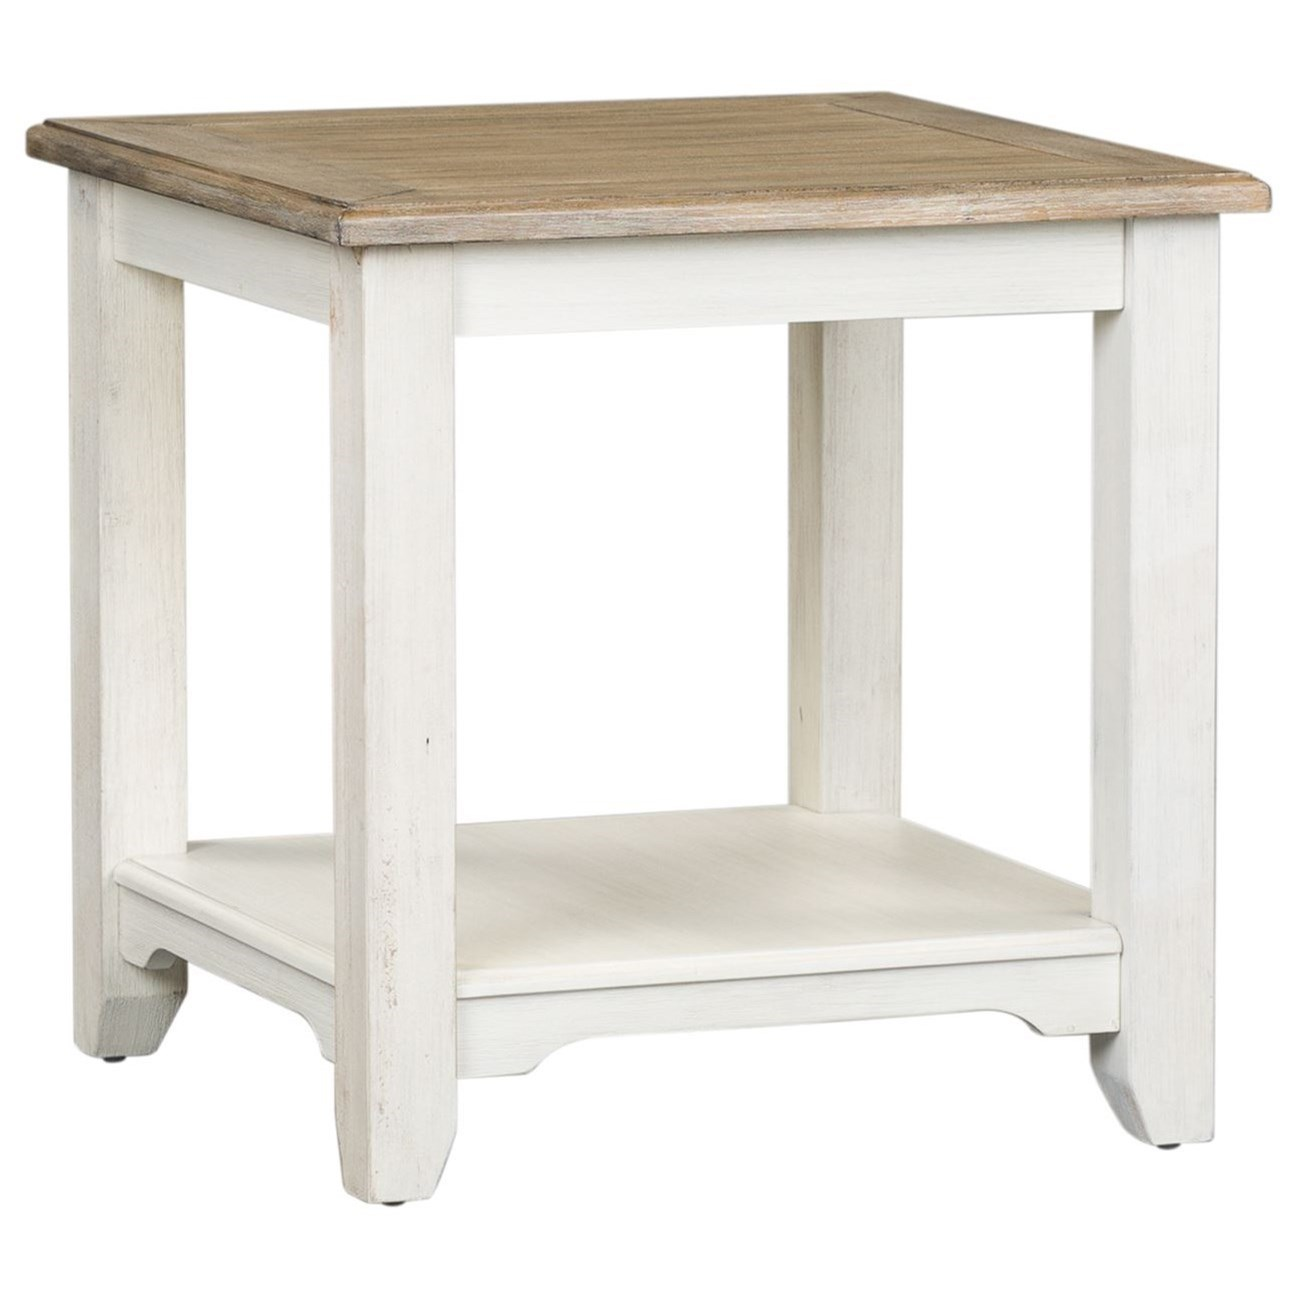 Summerville End Table by Libby at Walker's Furniture